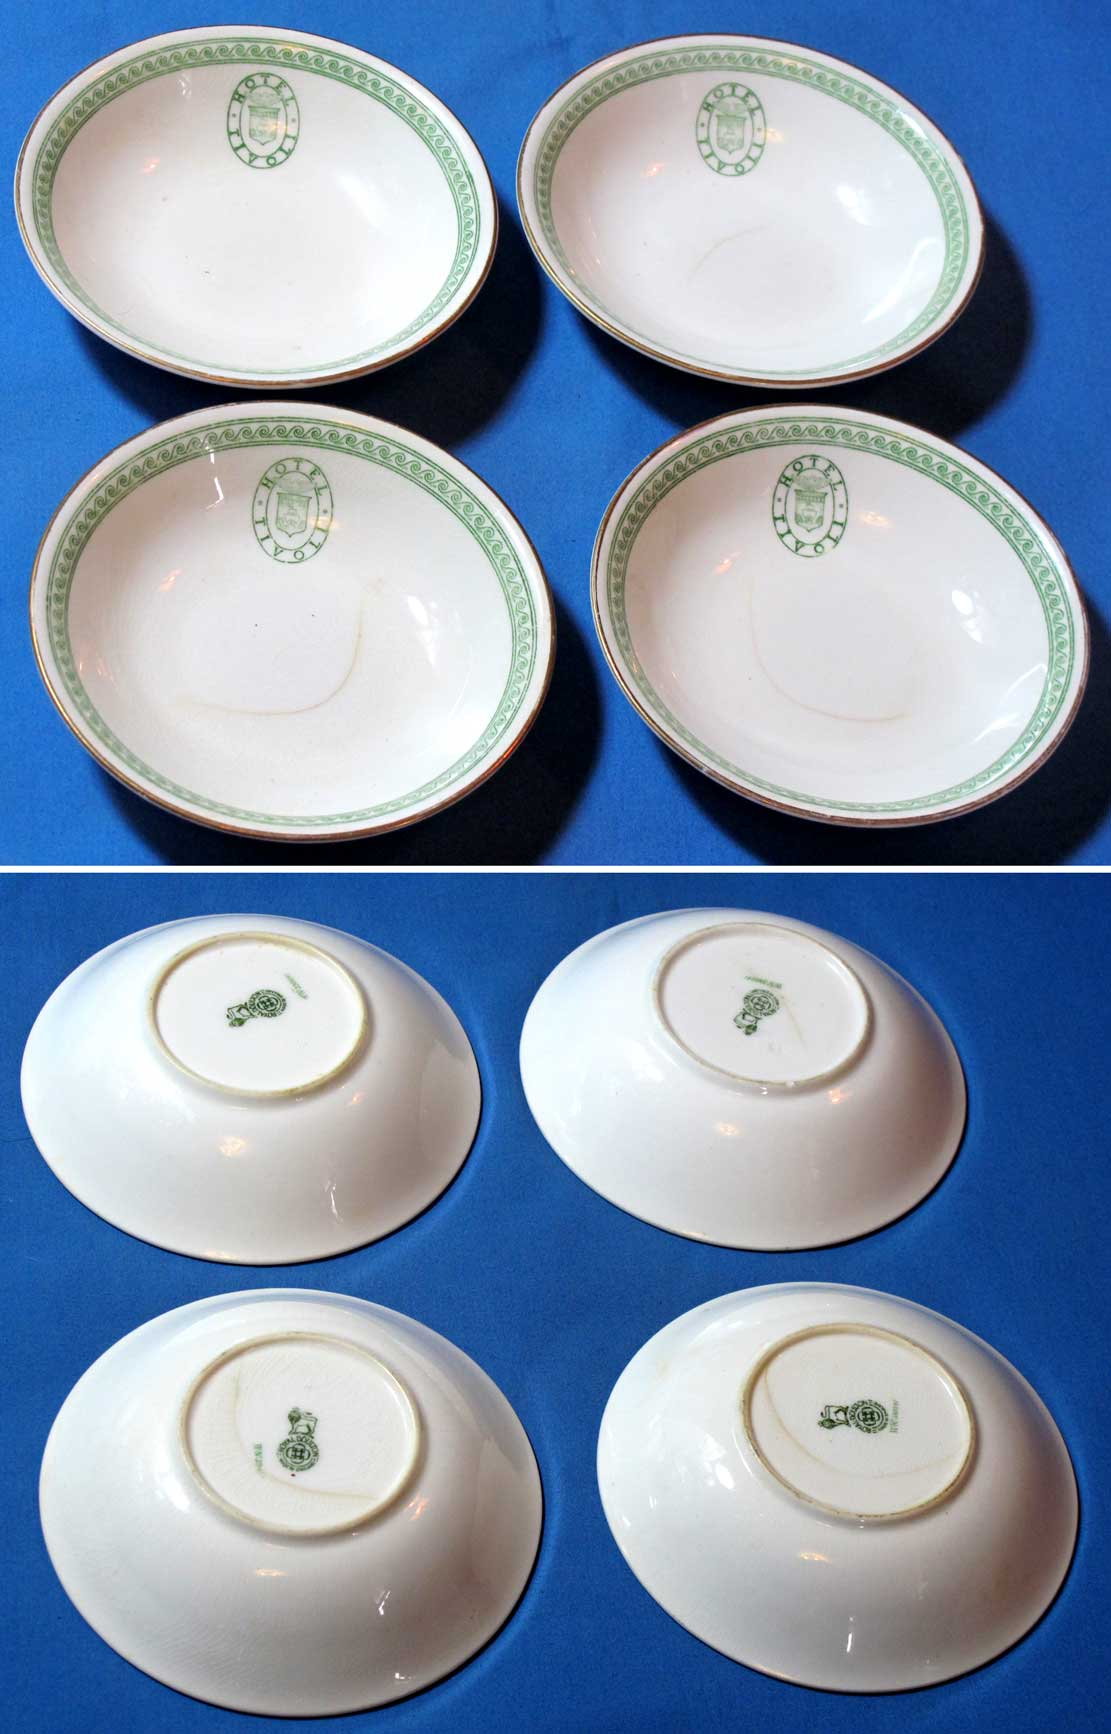 Tivoli Hotel Canal Zone Vintage Royal Doulton China Bowl Set From The Tivoli Hotel